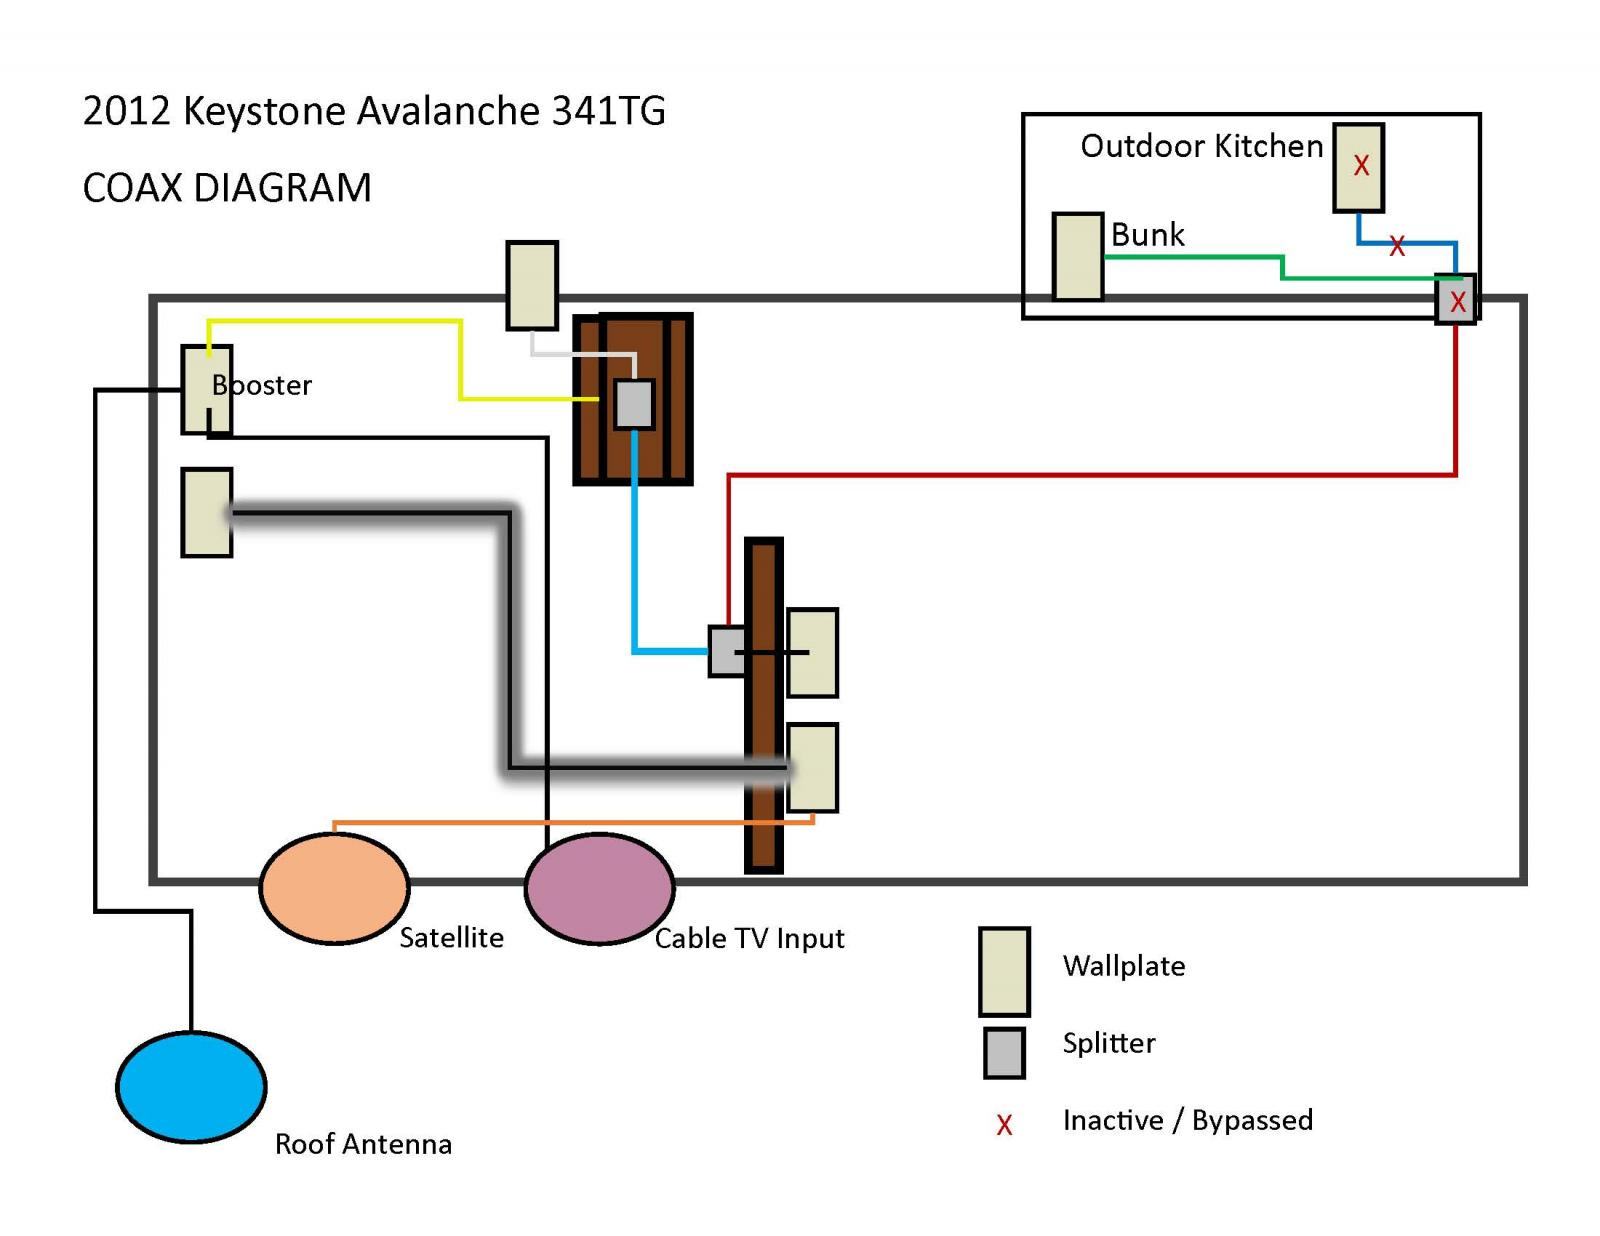 Coax Wiring Diagram--2012 Avalanche 341TG - Keystone RV ForumsKeystone RV Forums